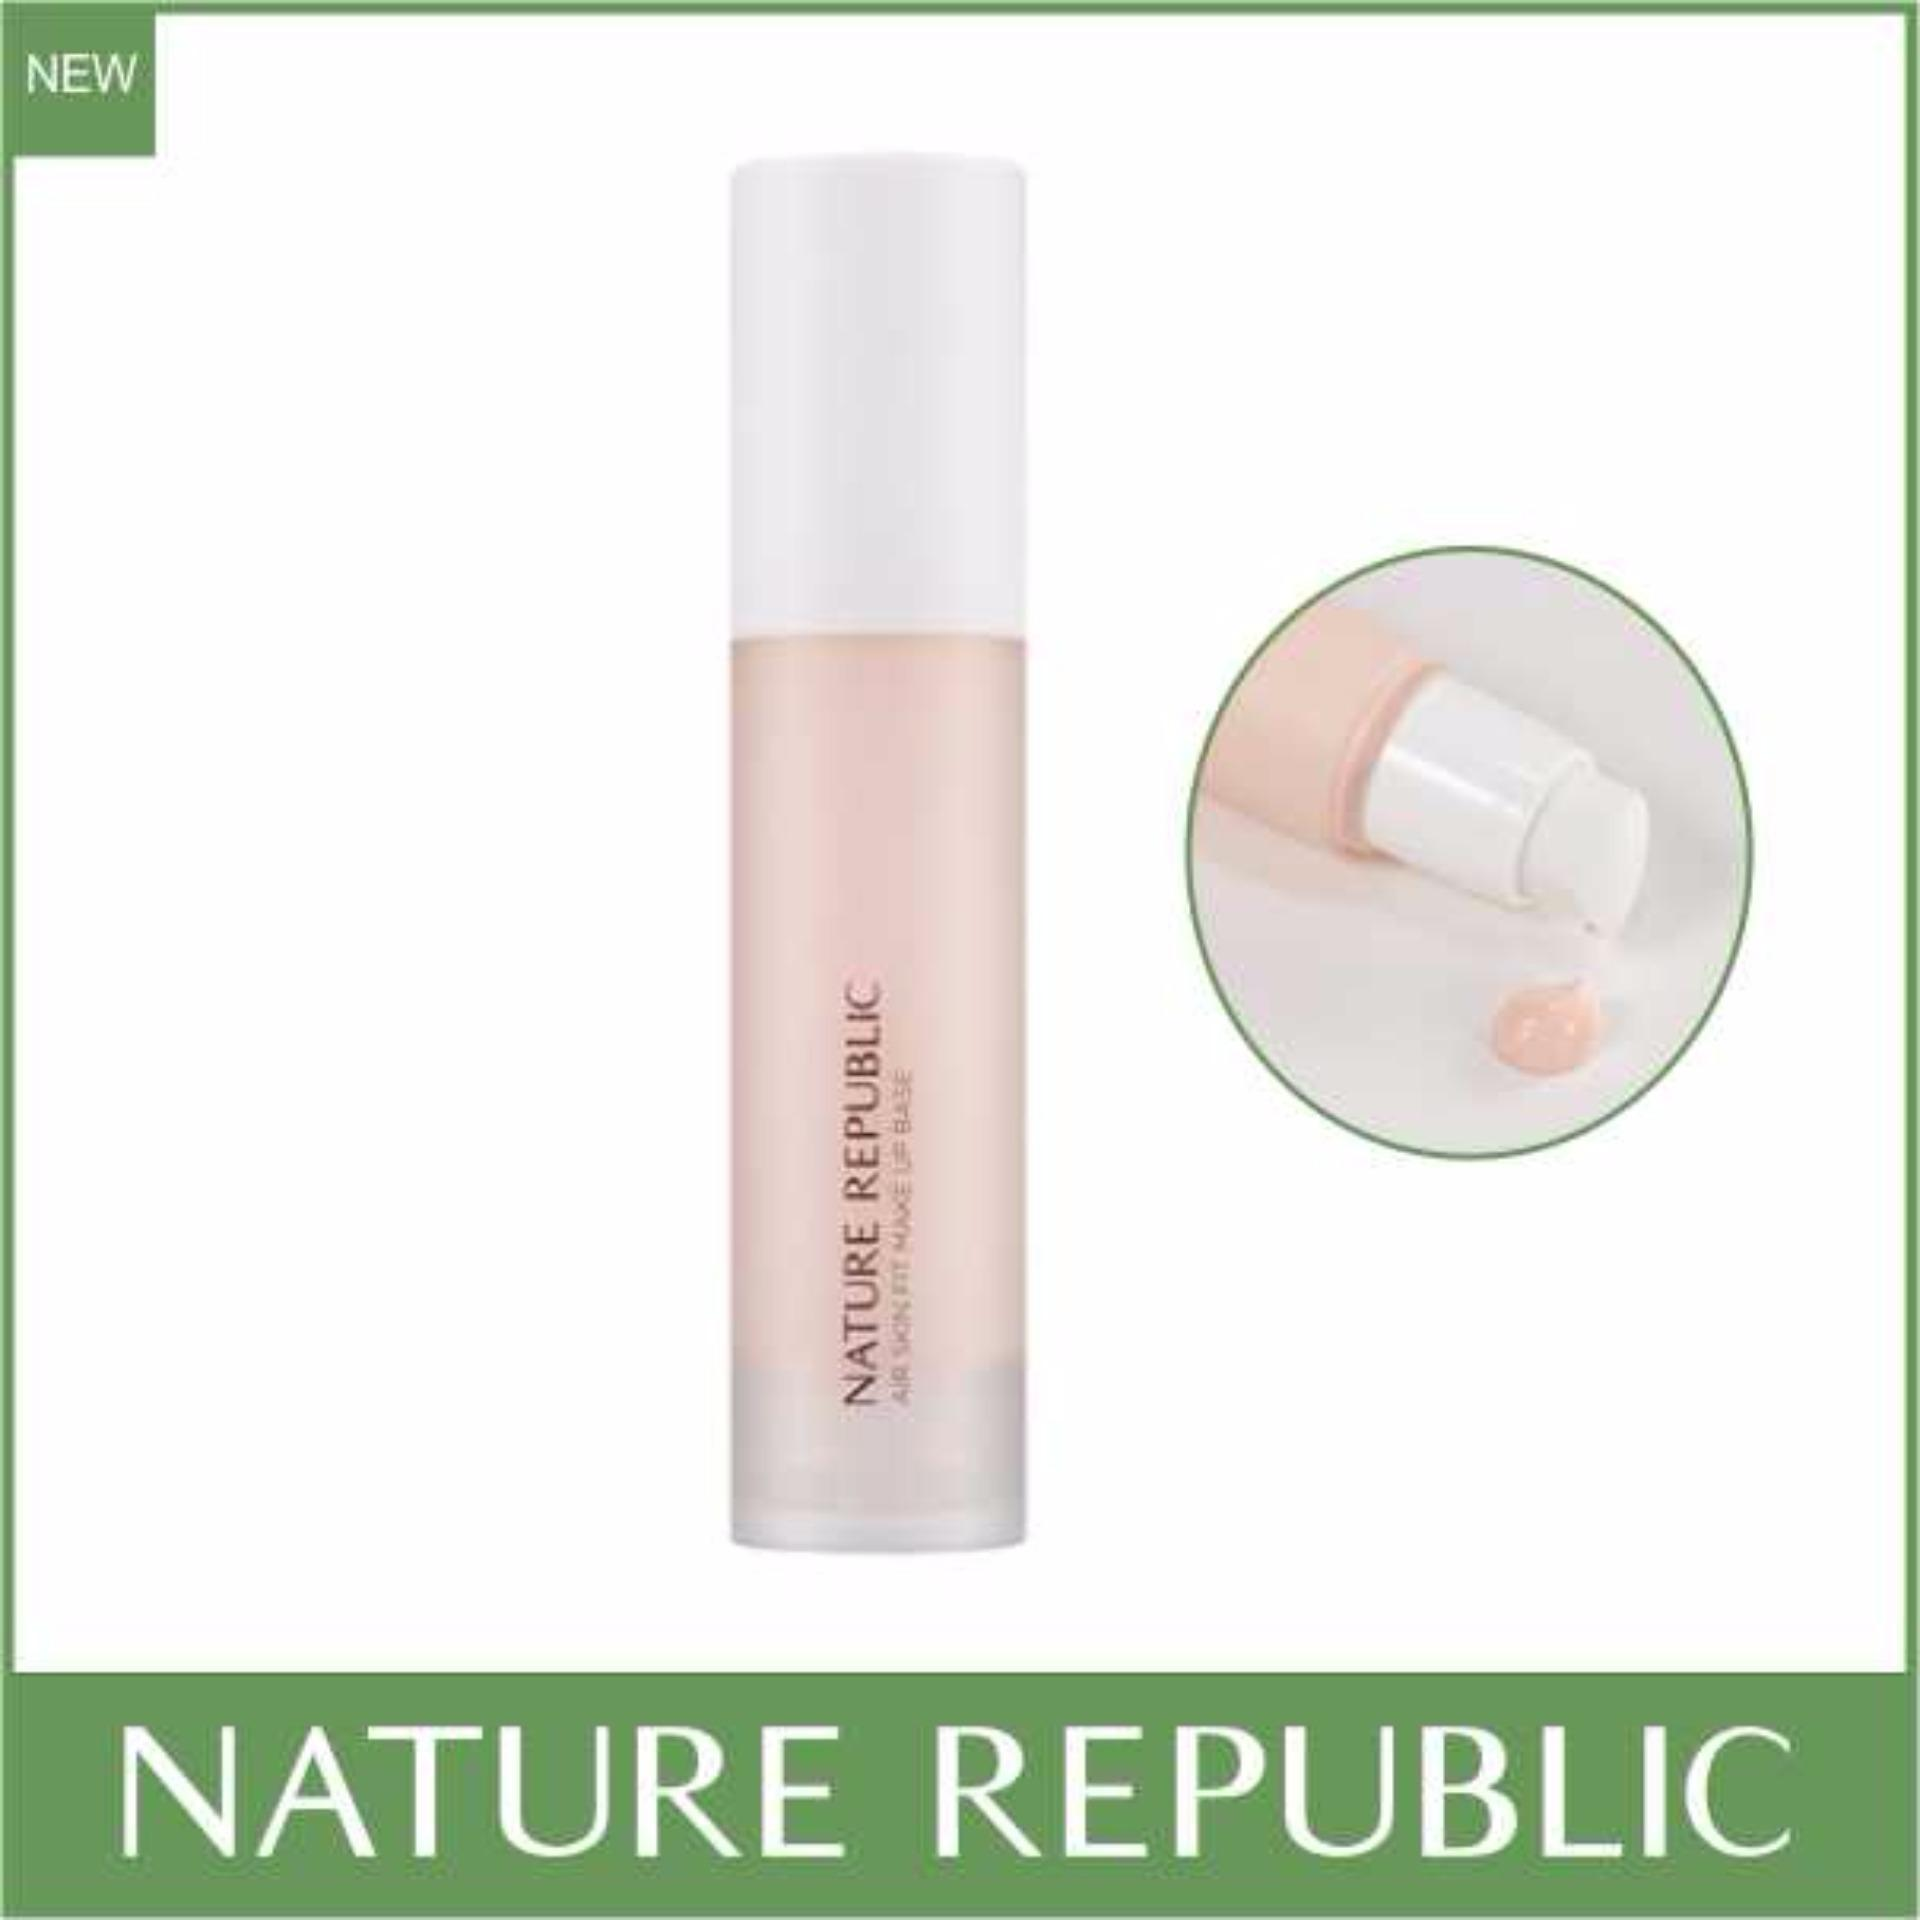 Nature Republic Provence Air Skin Fit Make Up Base SPF30 PA++ (01 Pink) Philippines